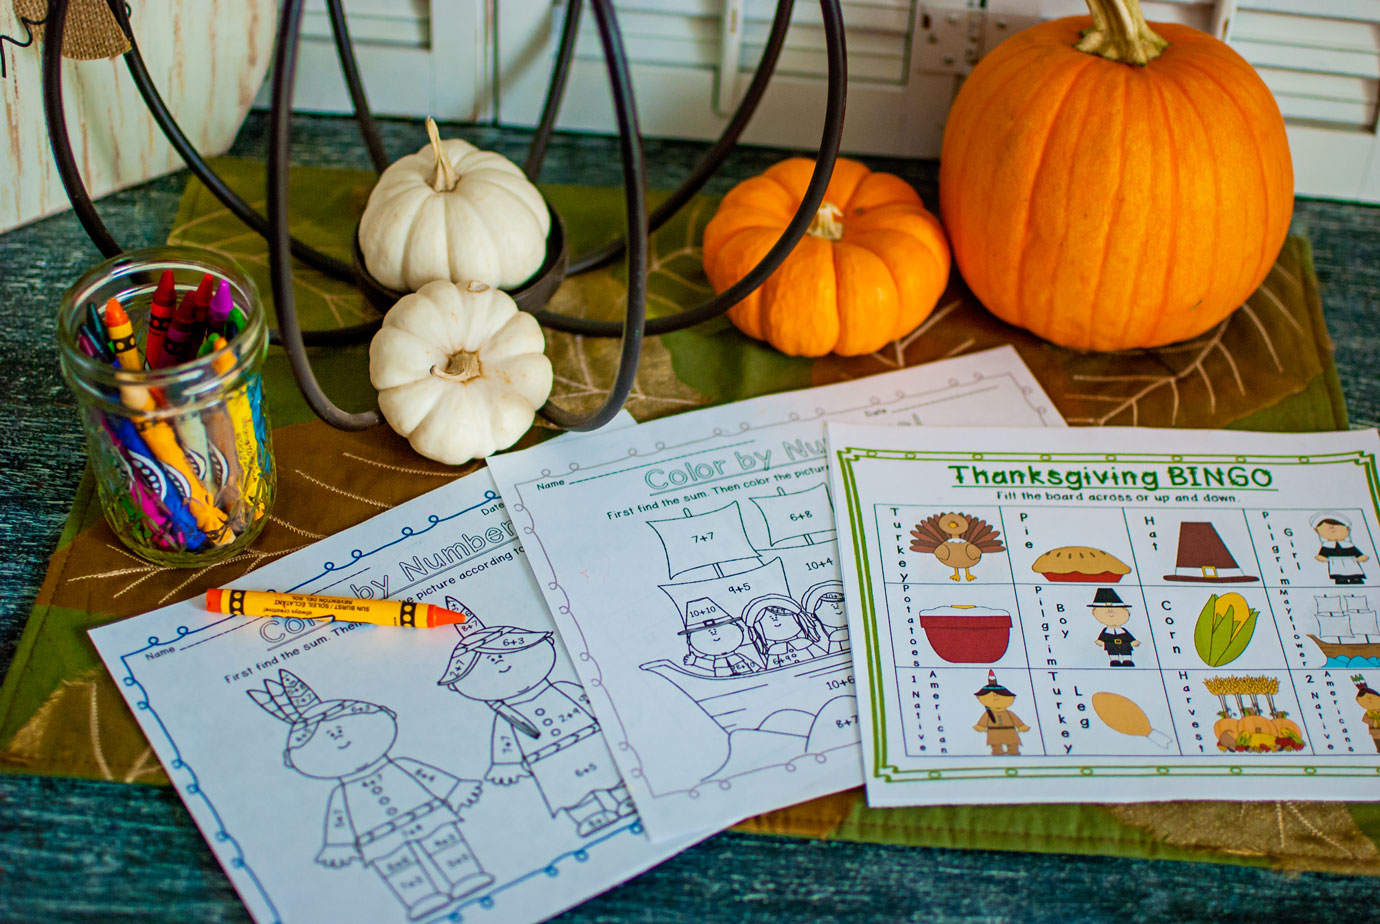 Free Educational Holiday Printables From Teachersherpa